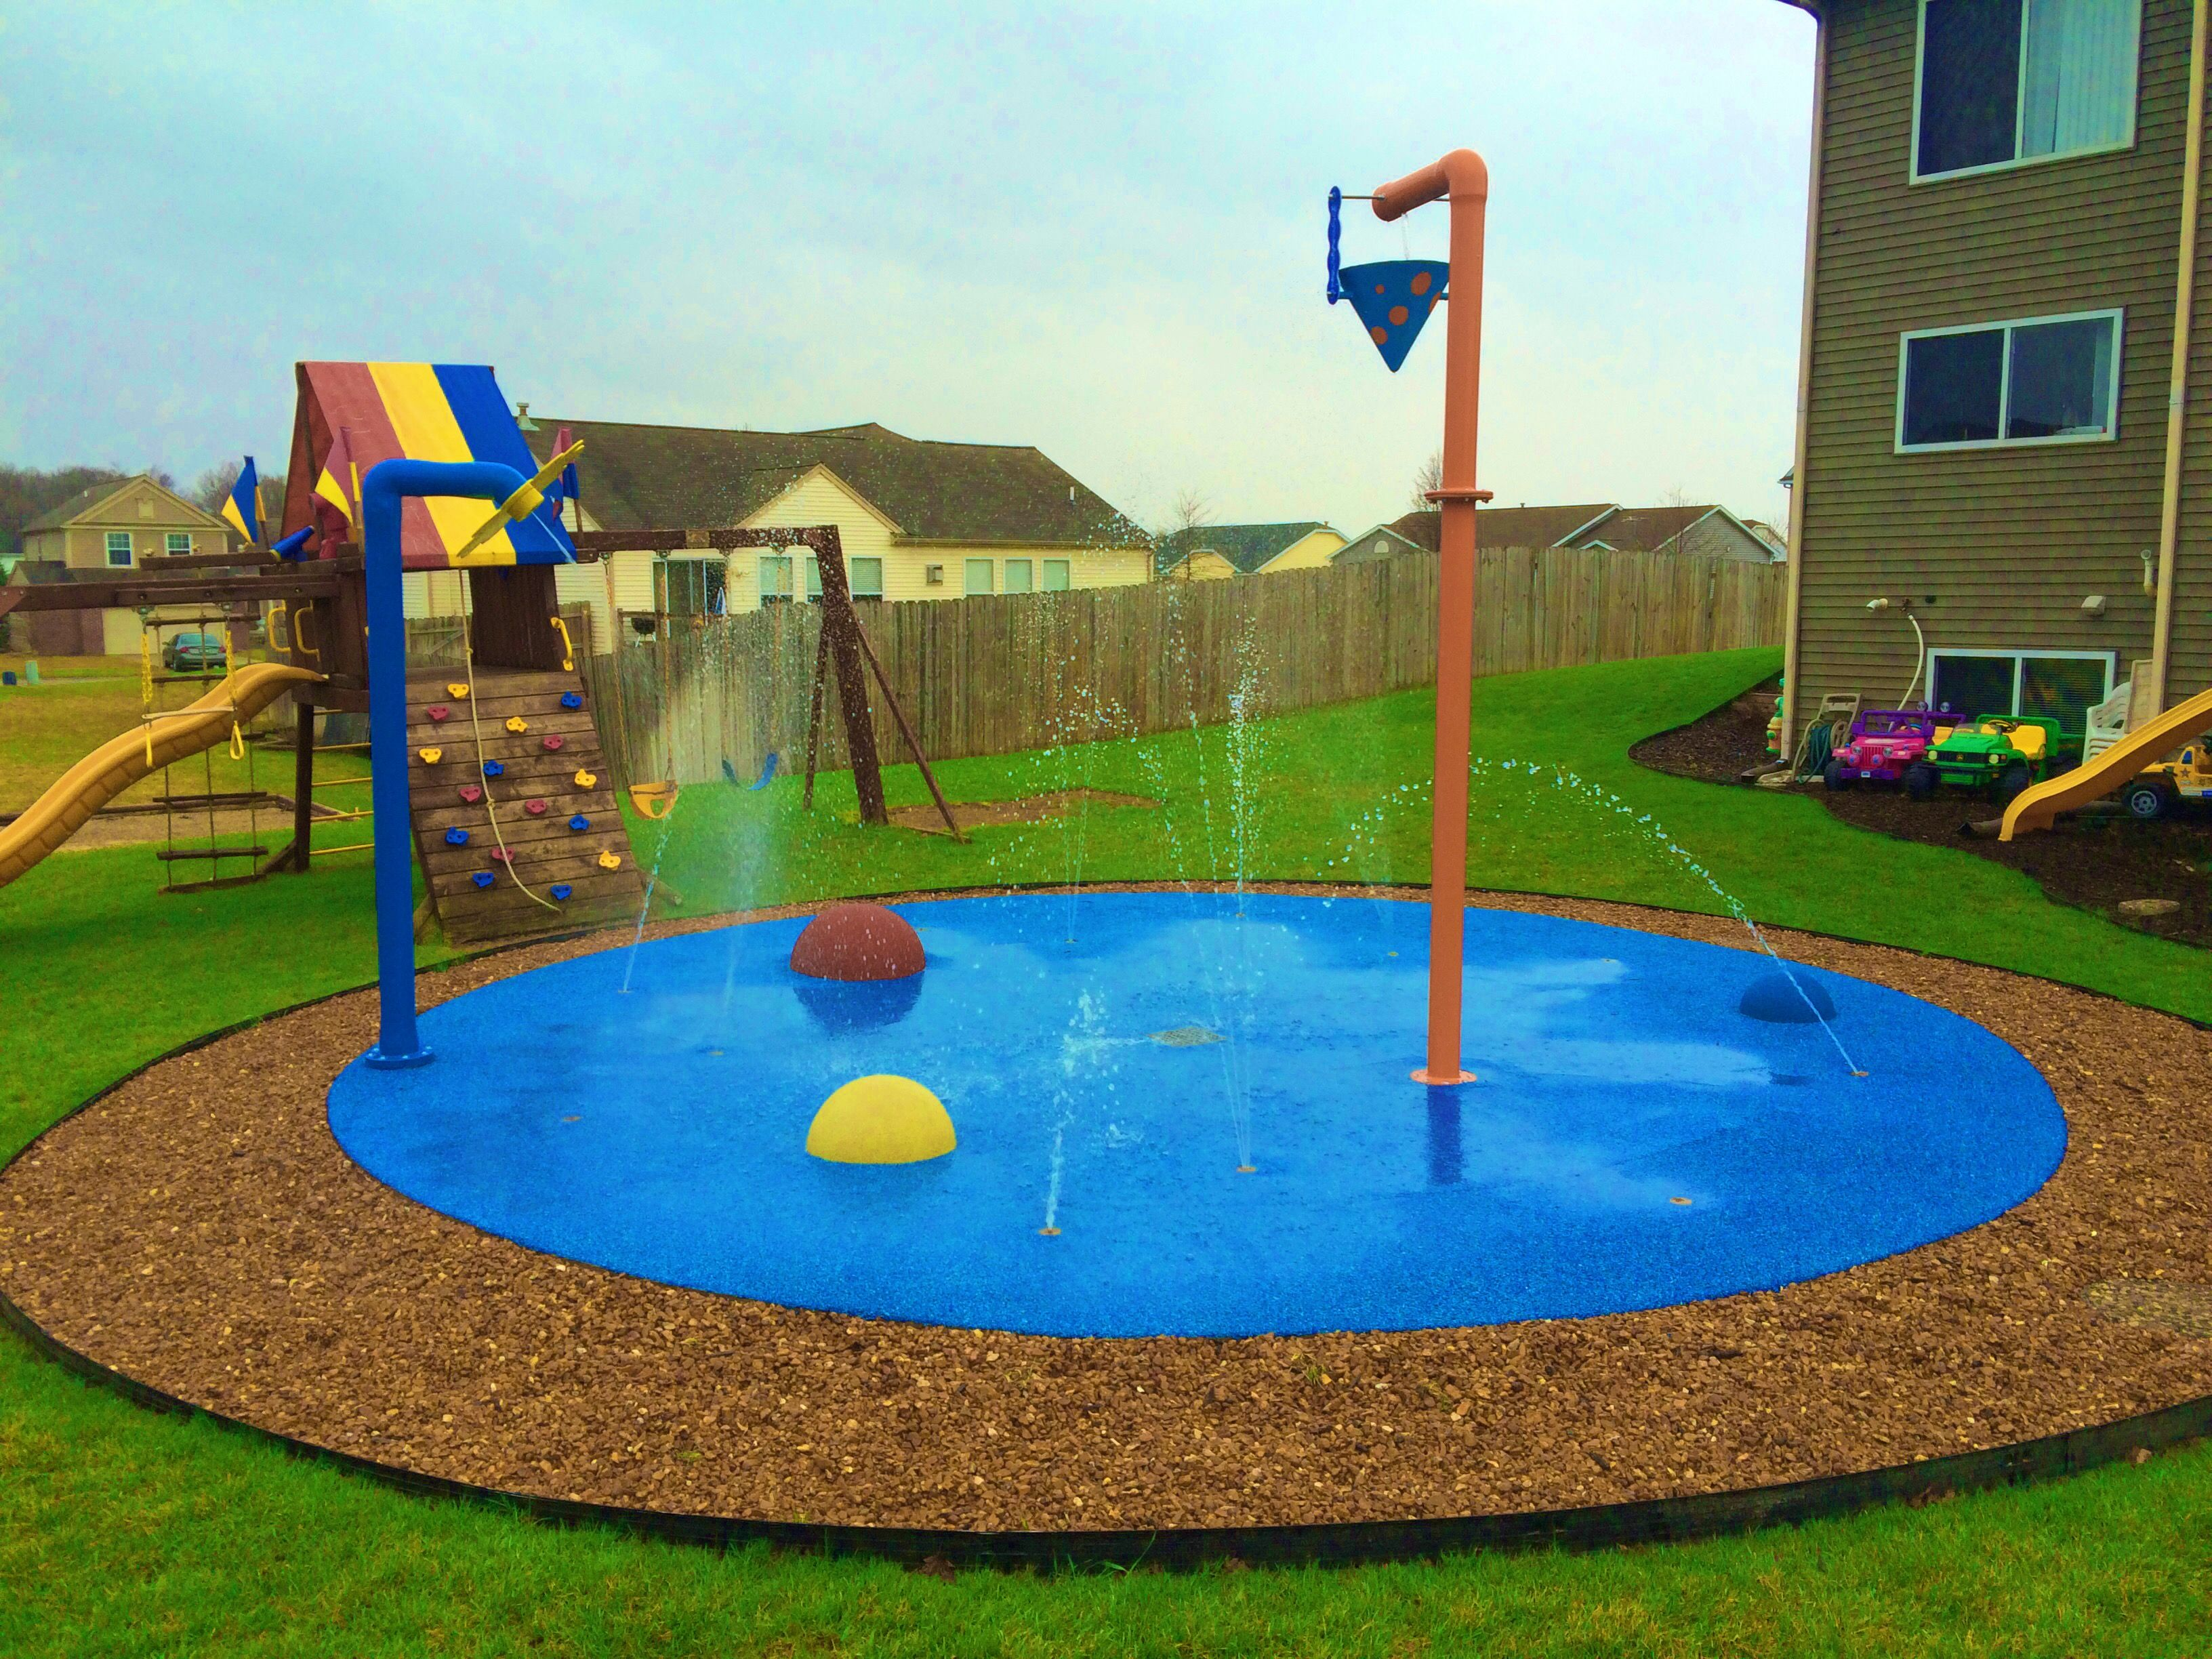 Water play for your backyard A spray park for your home is fun